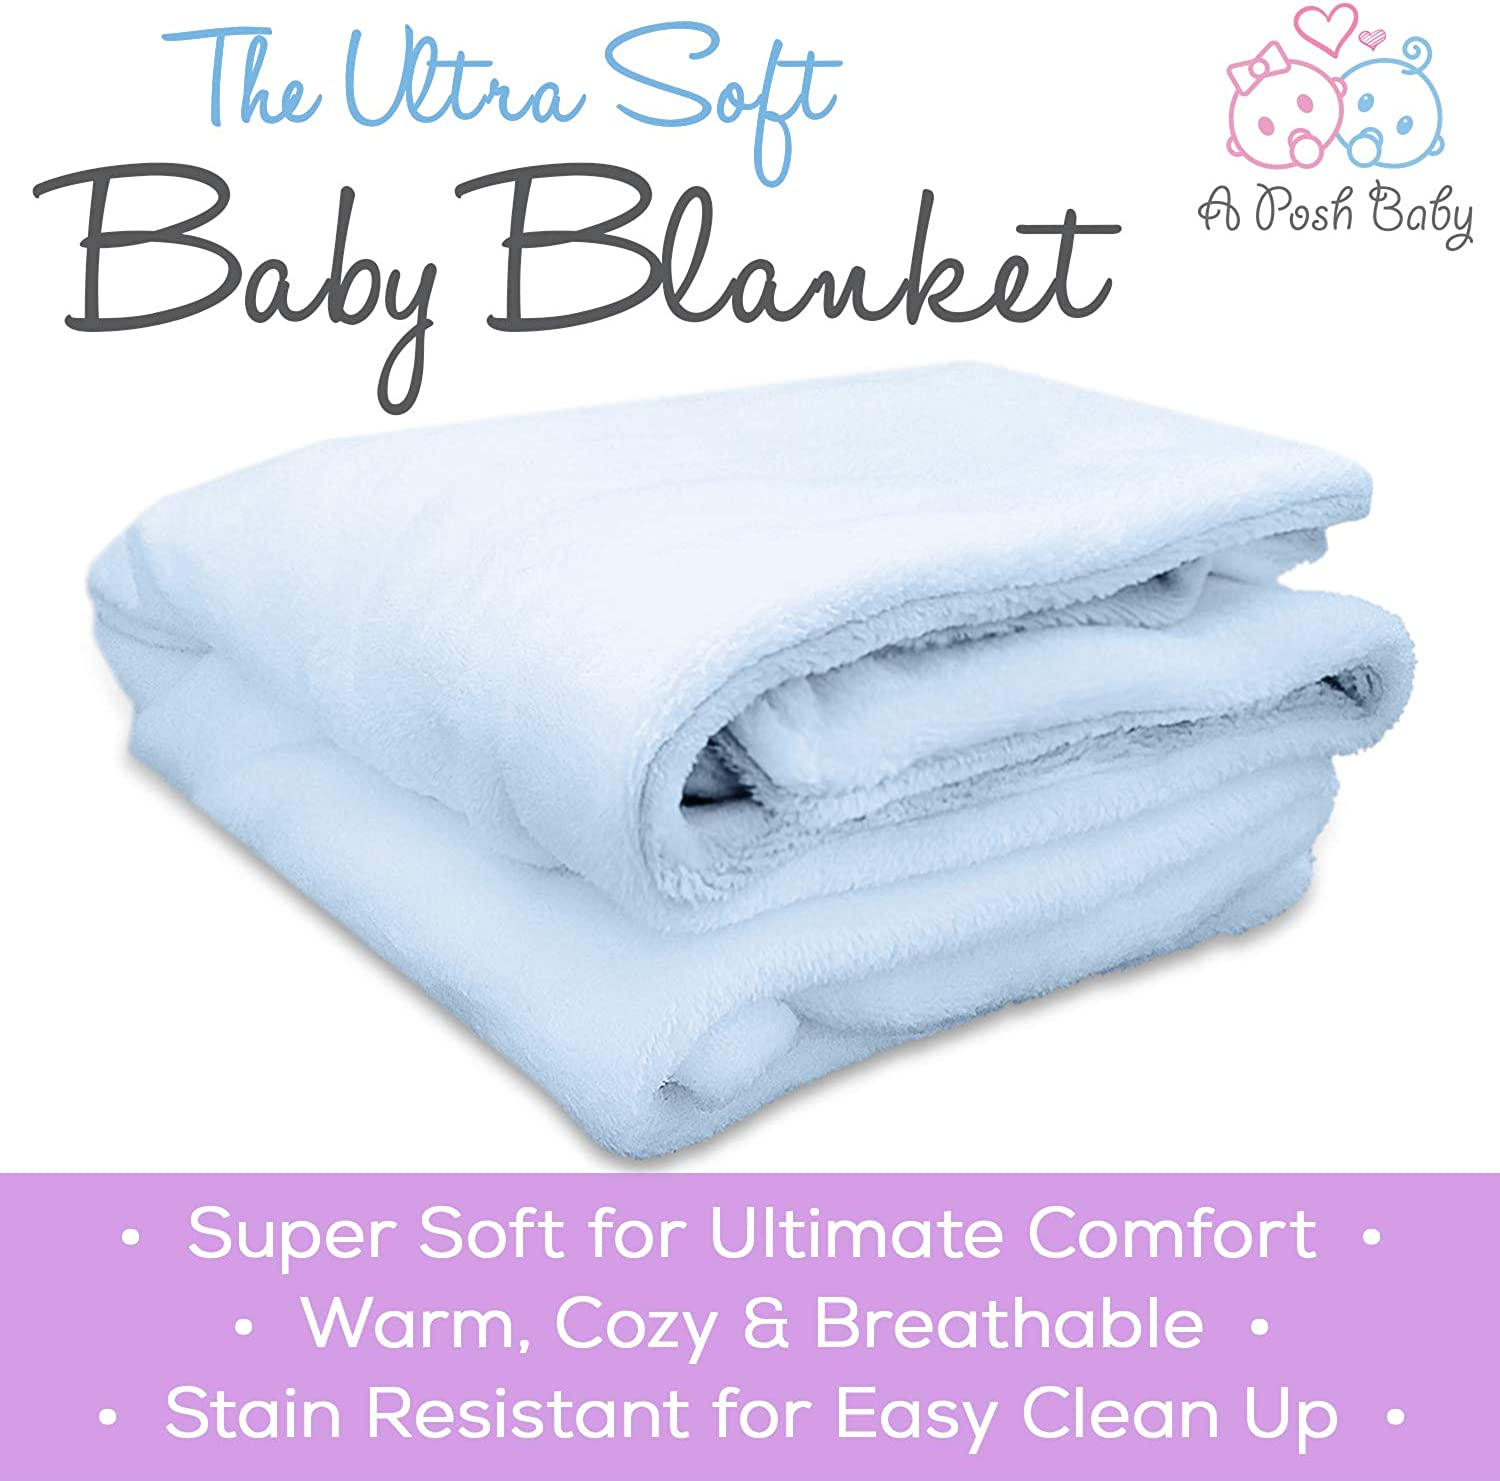 30 x 40 in Warm and Cozy APB Baby Blanket with Double Layer Backing Ultra Soft